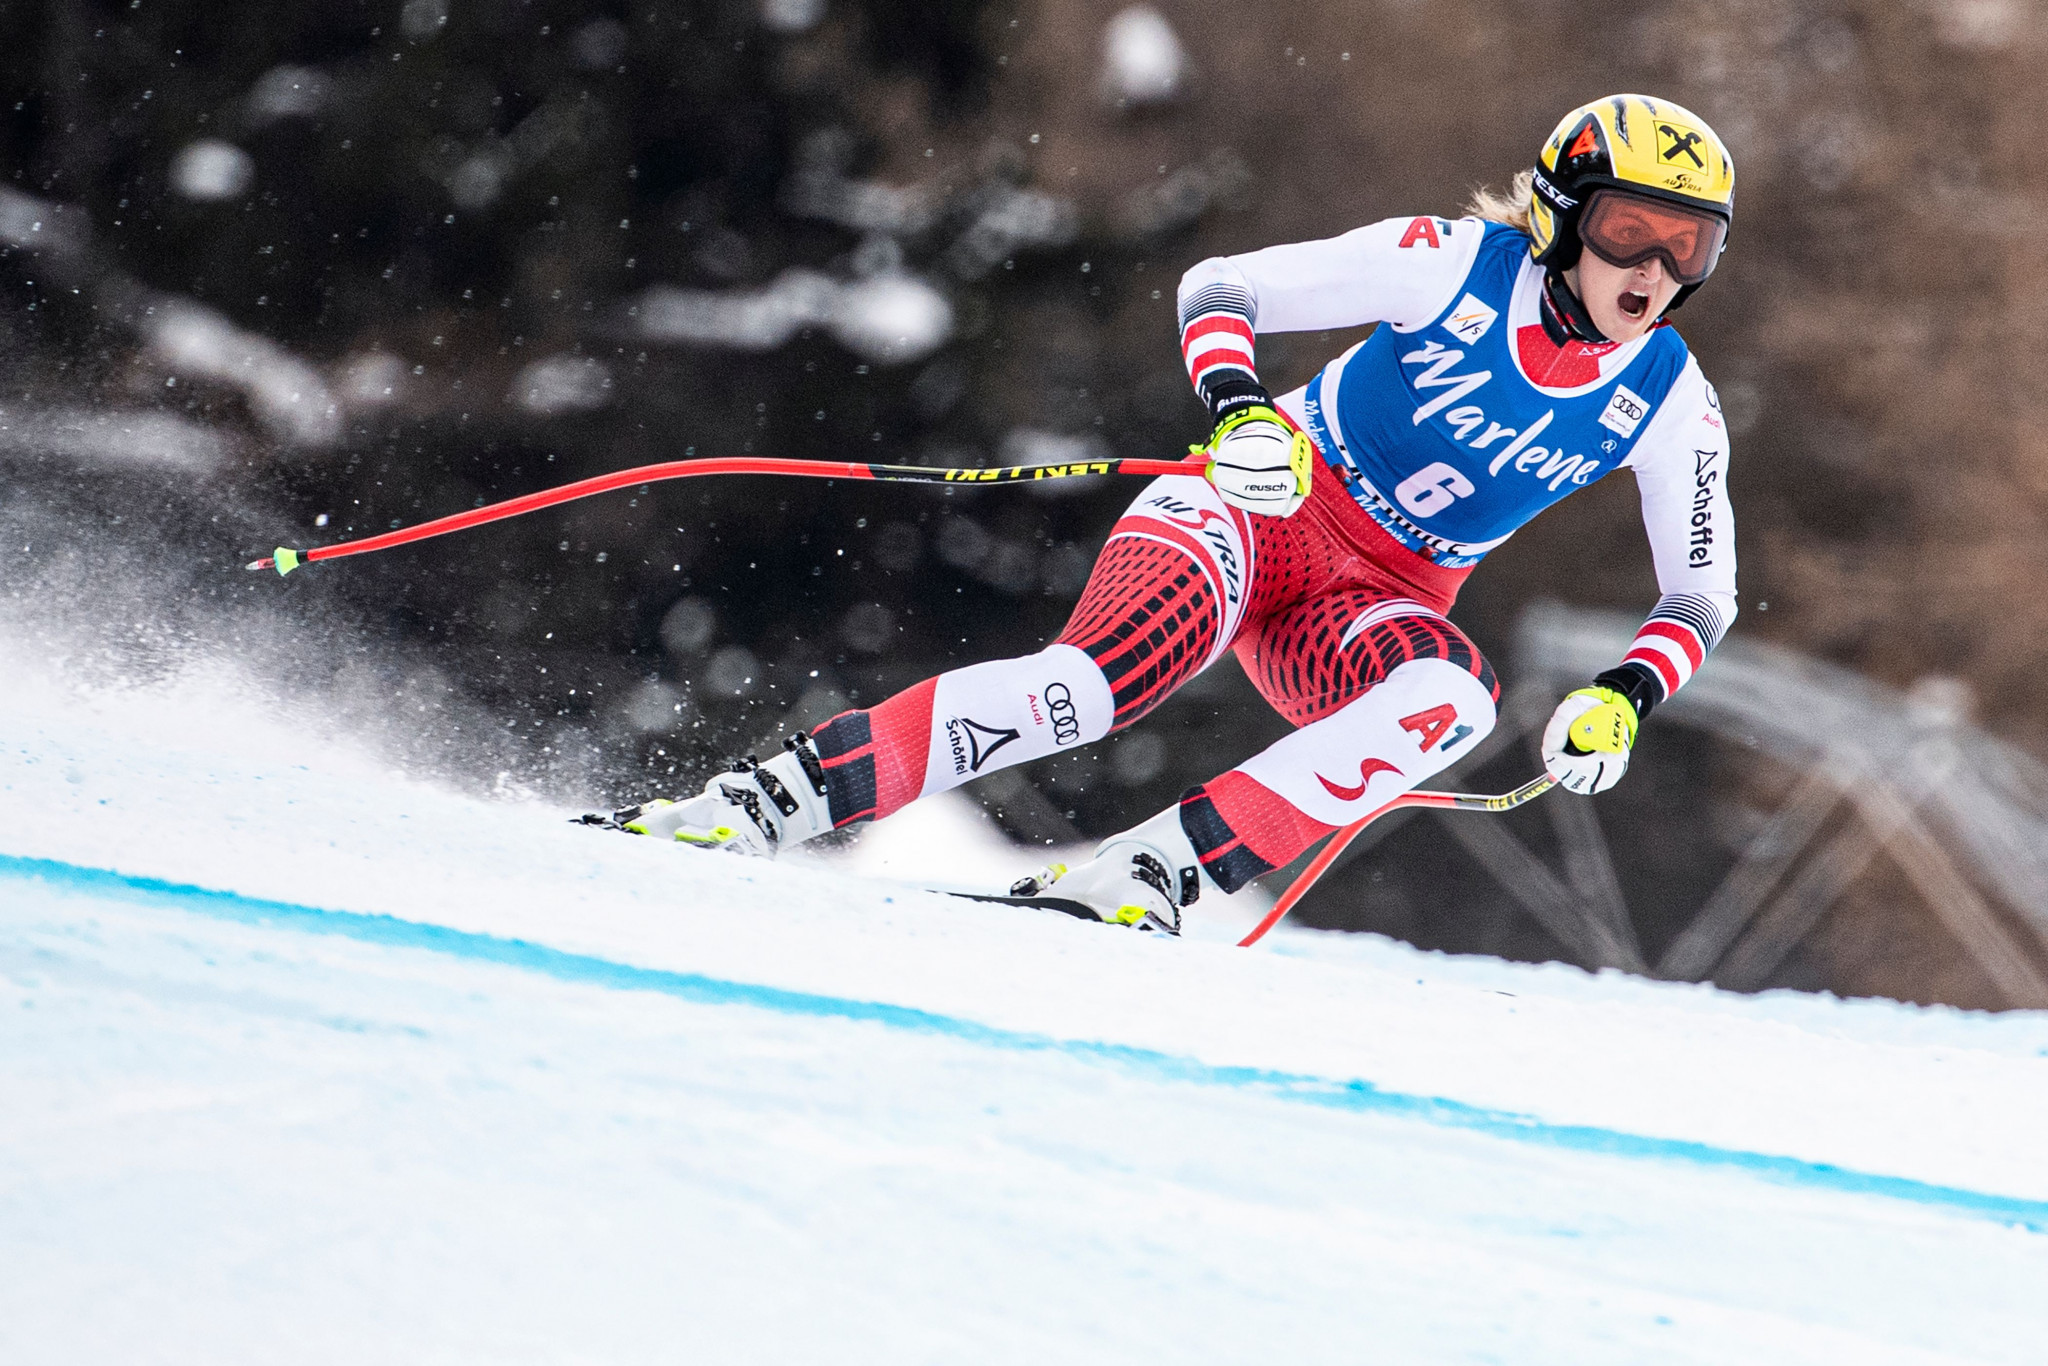 Ortlieb earns first FIS Alpine Skiing World Cup win in La Thuile